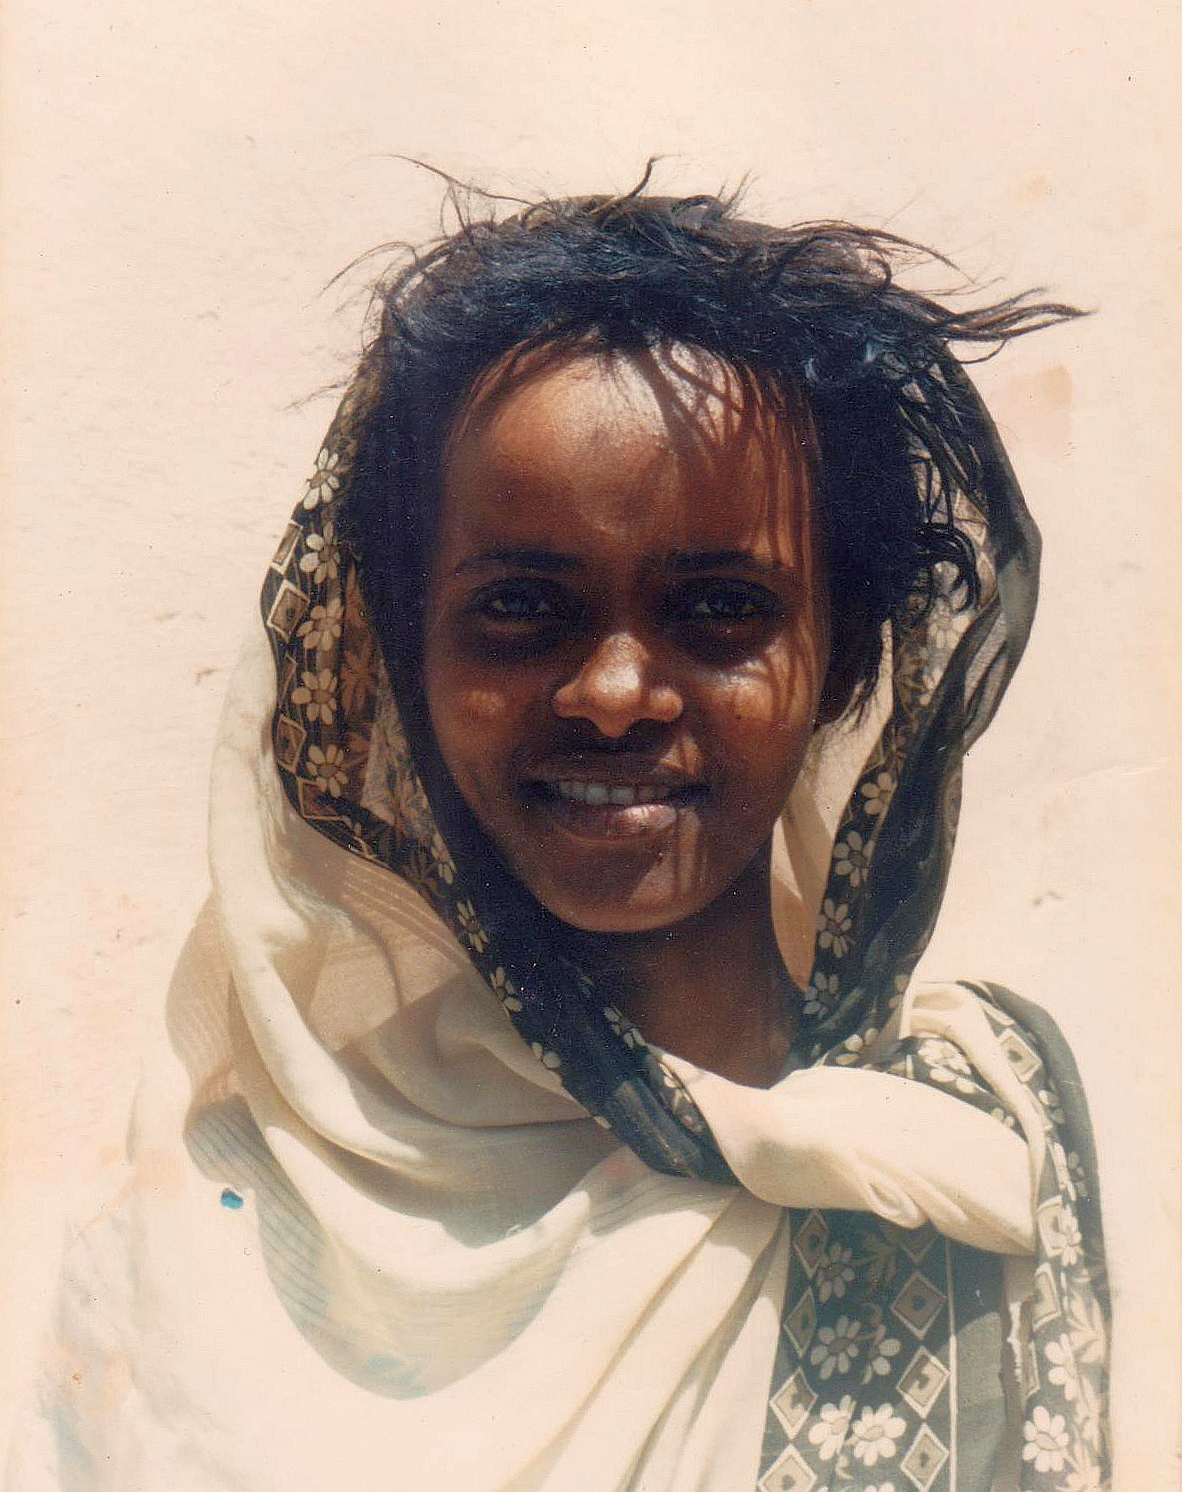 Description Somali girl 01.jpg